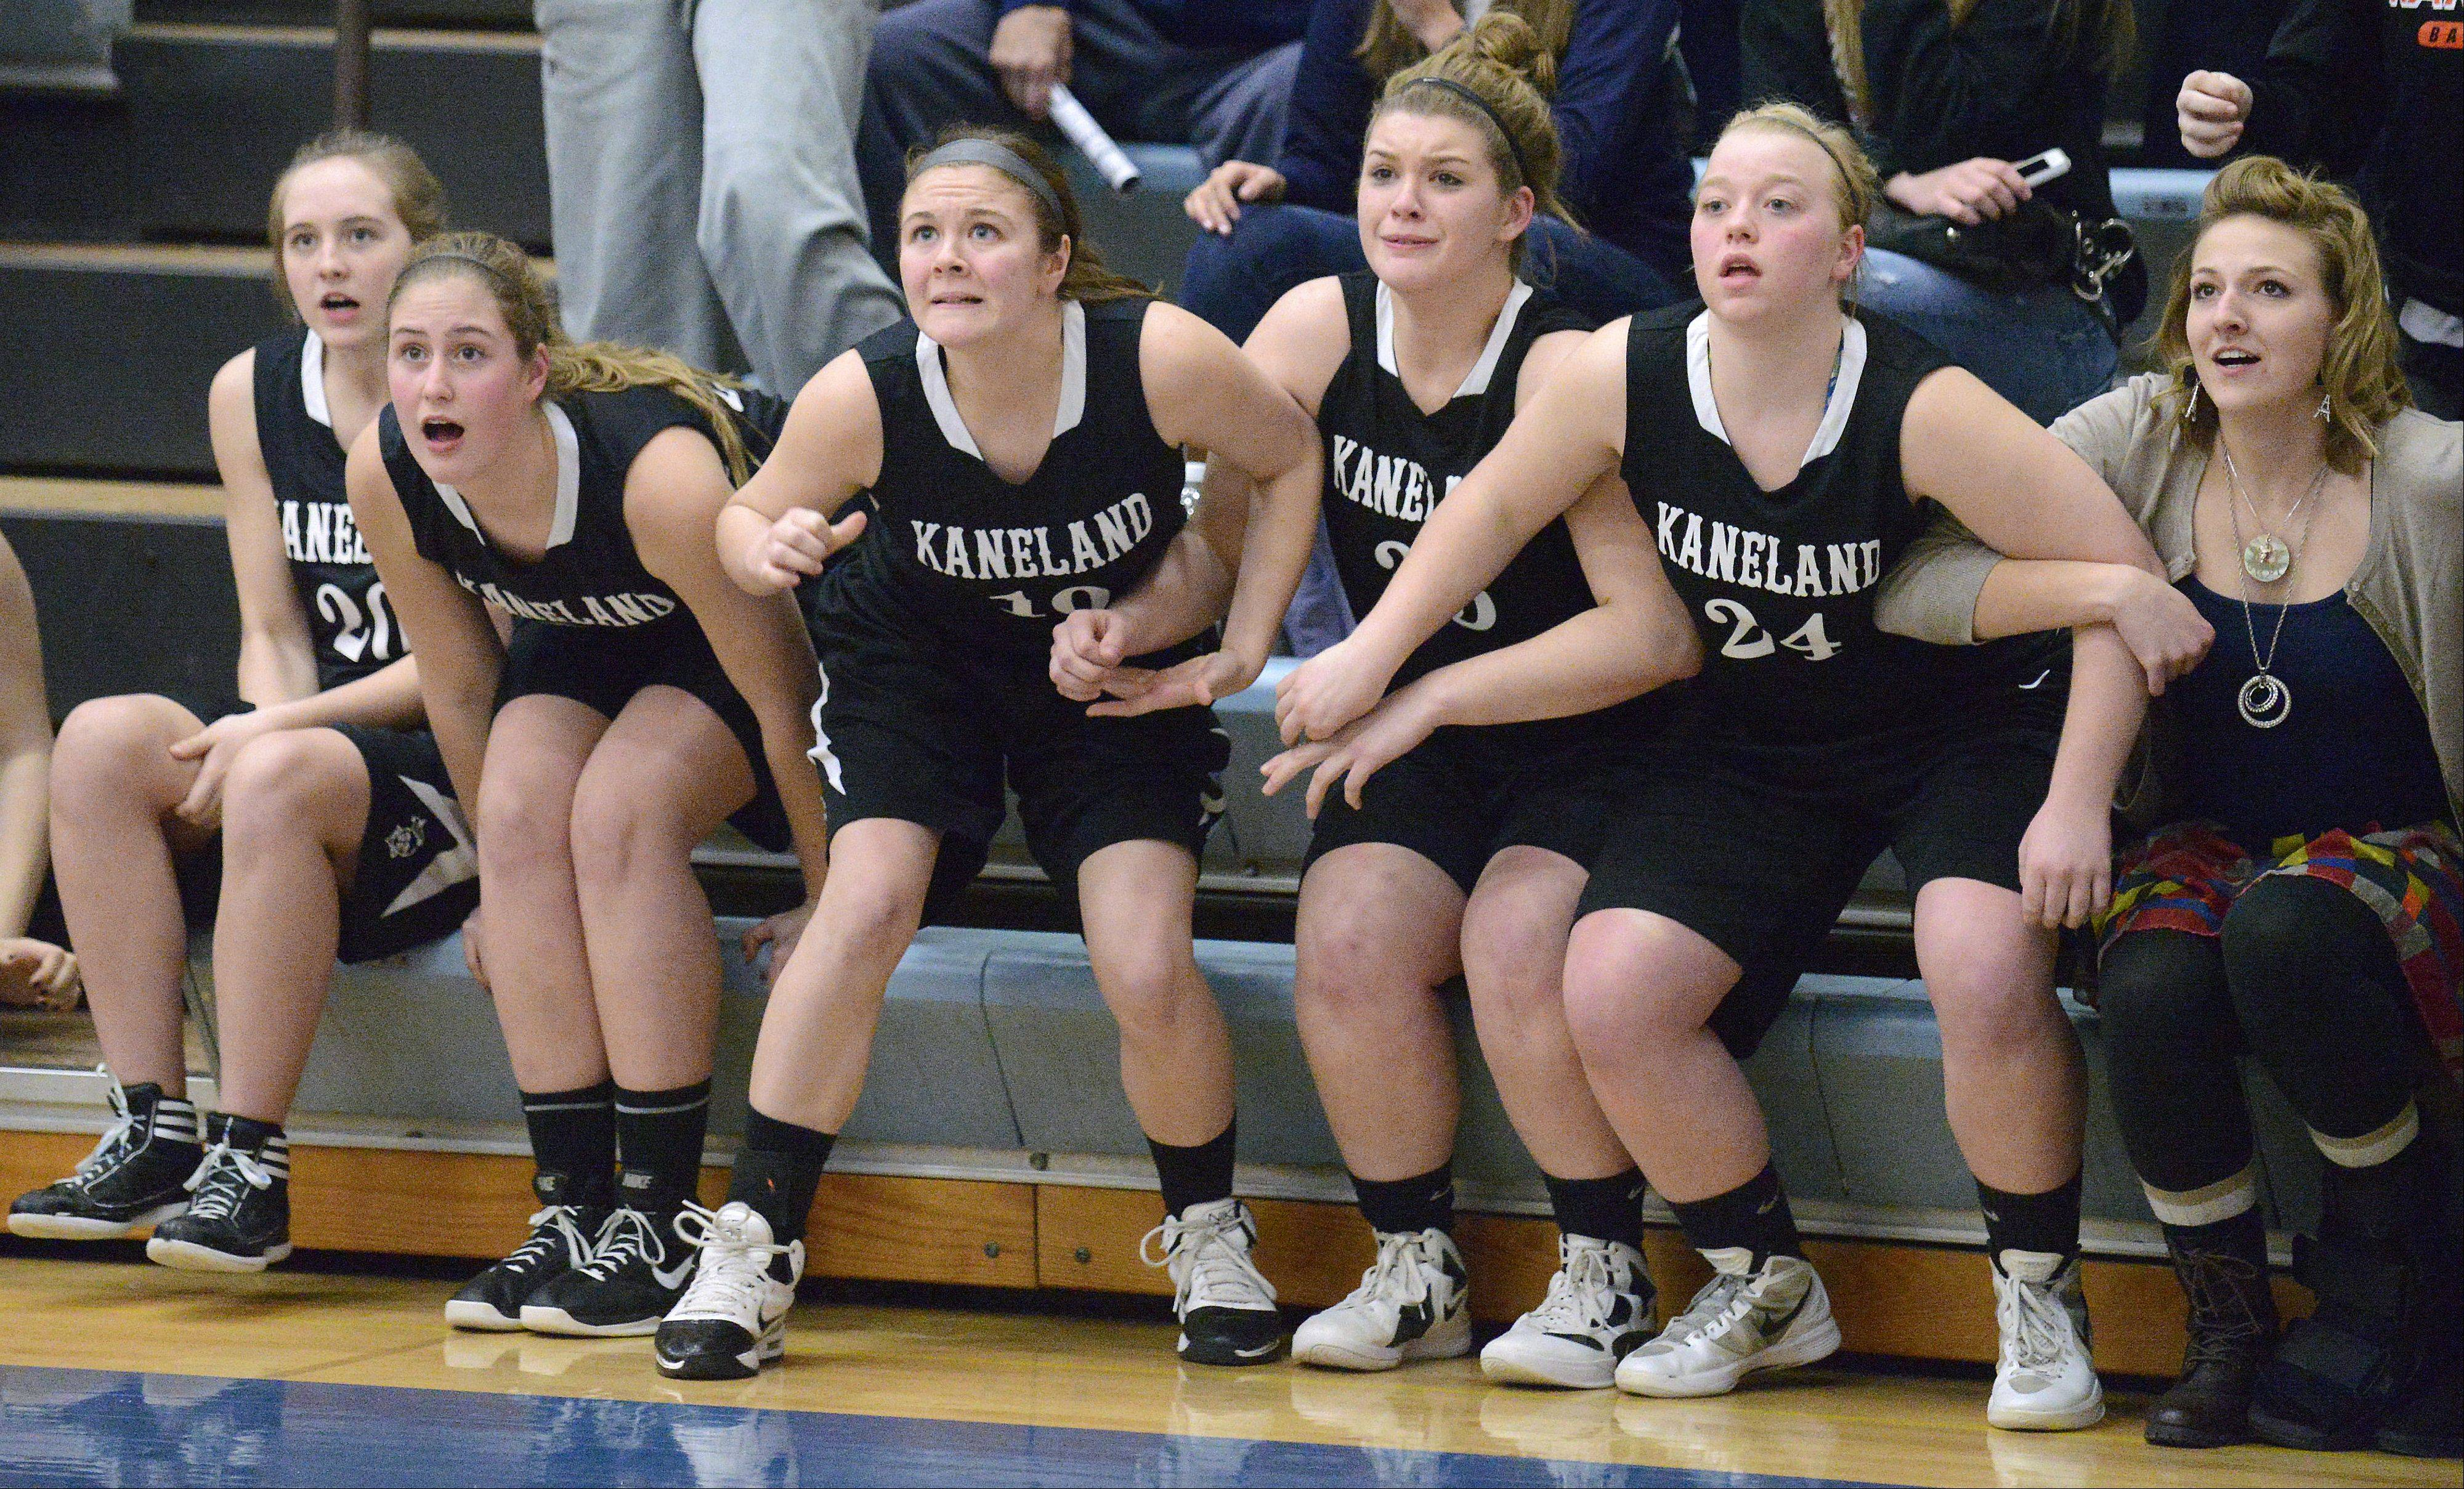 Kaneland's Ally VanBogaert, Katherine Brinkman, Brittany Kemp, and Amber Winquist Bailey lean forward with linked in arms as they watch one of the final baskets in the Class 3A regional game on Wednesday, February 13. The Knights rallied hard in the second half, but lost by just one point.